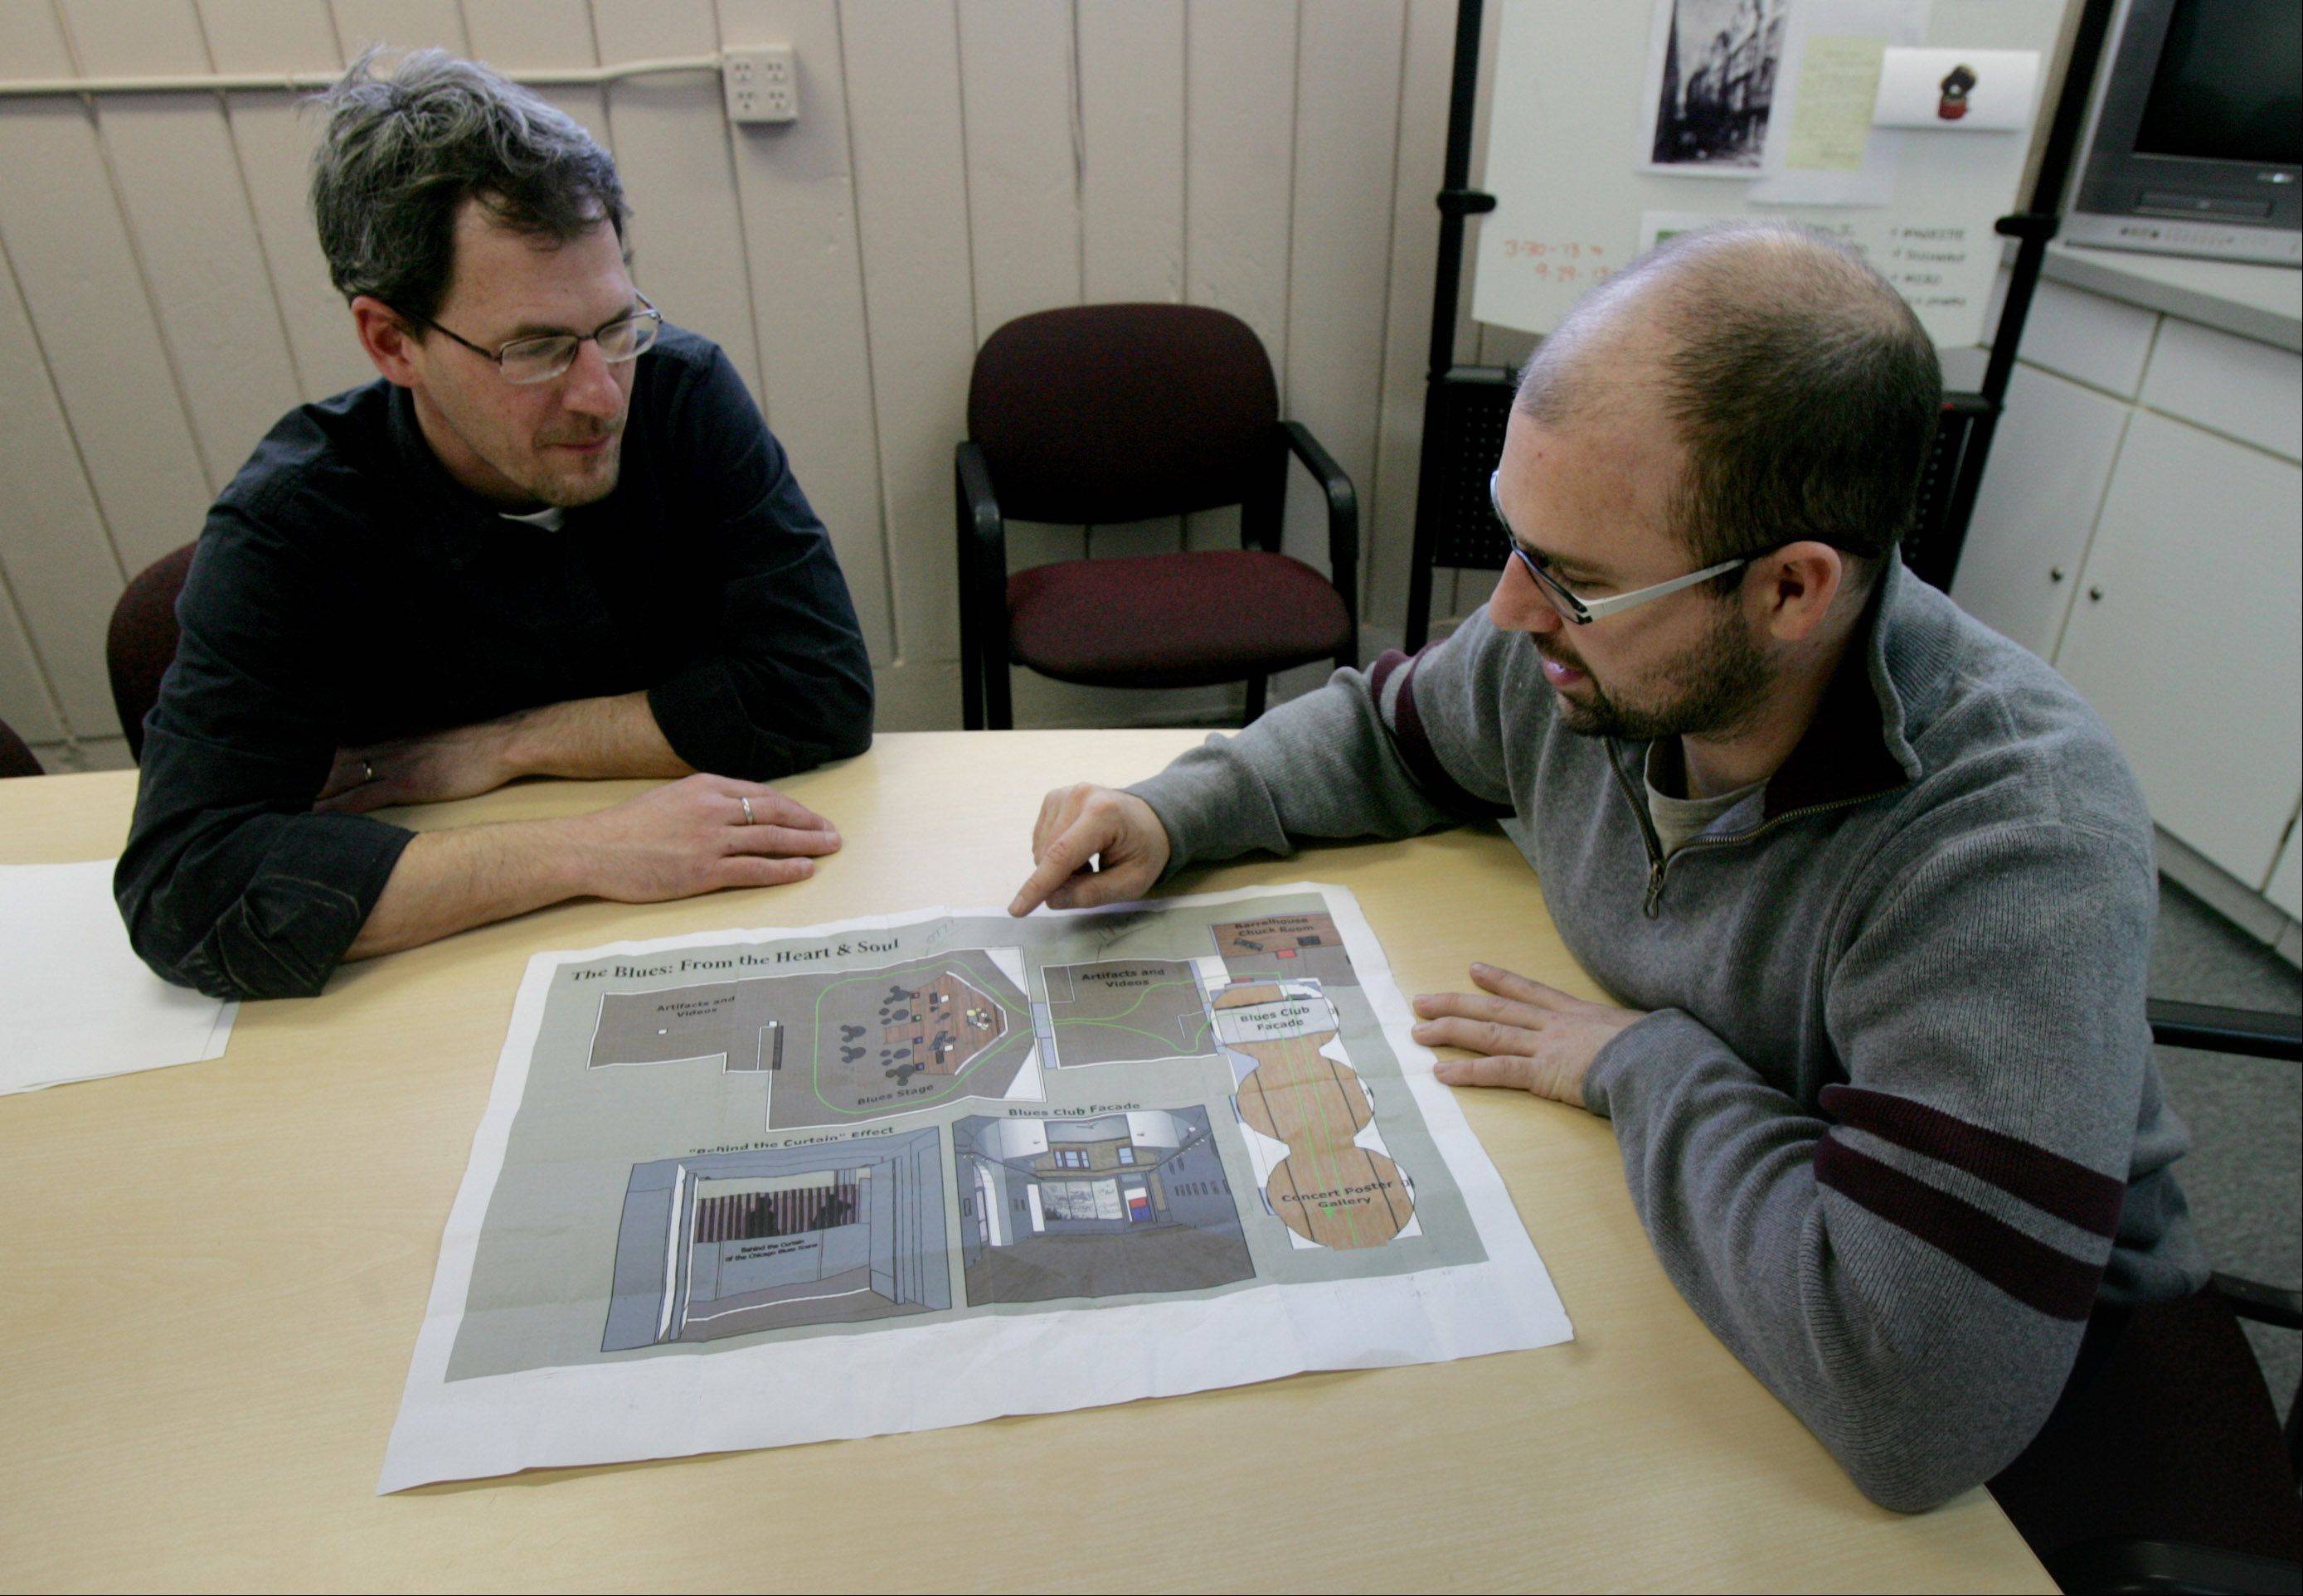 Steve Furnett, left, and Justin Collins review the layout for the gallery for the exhibit.